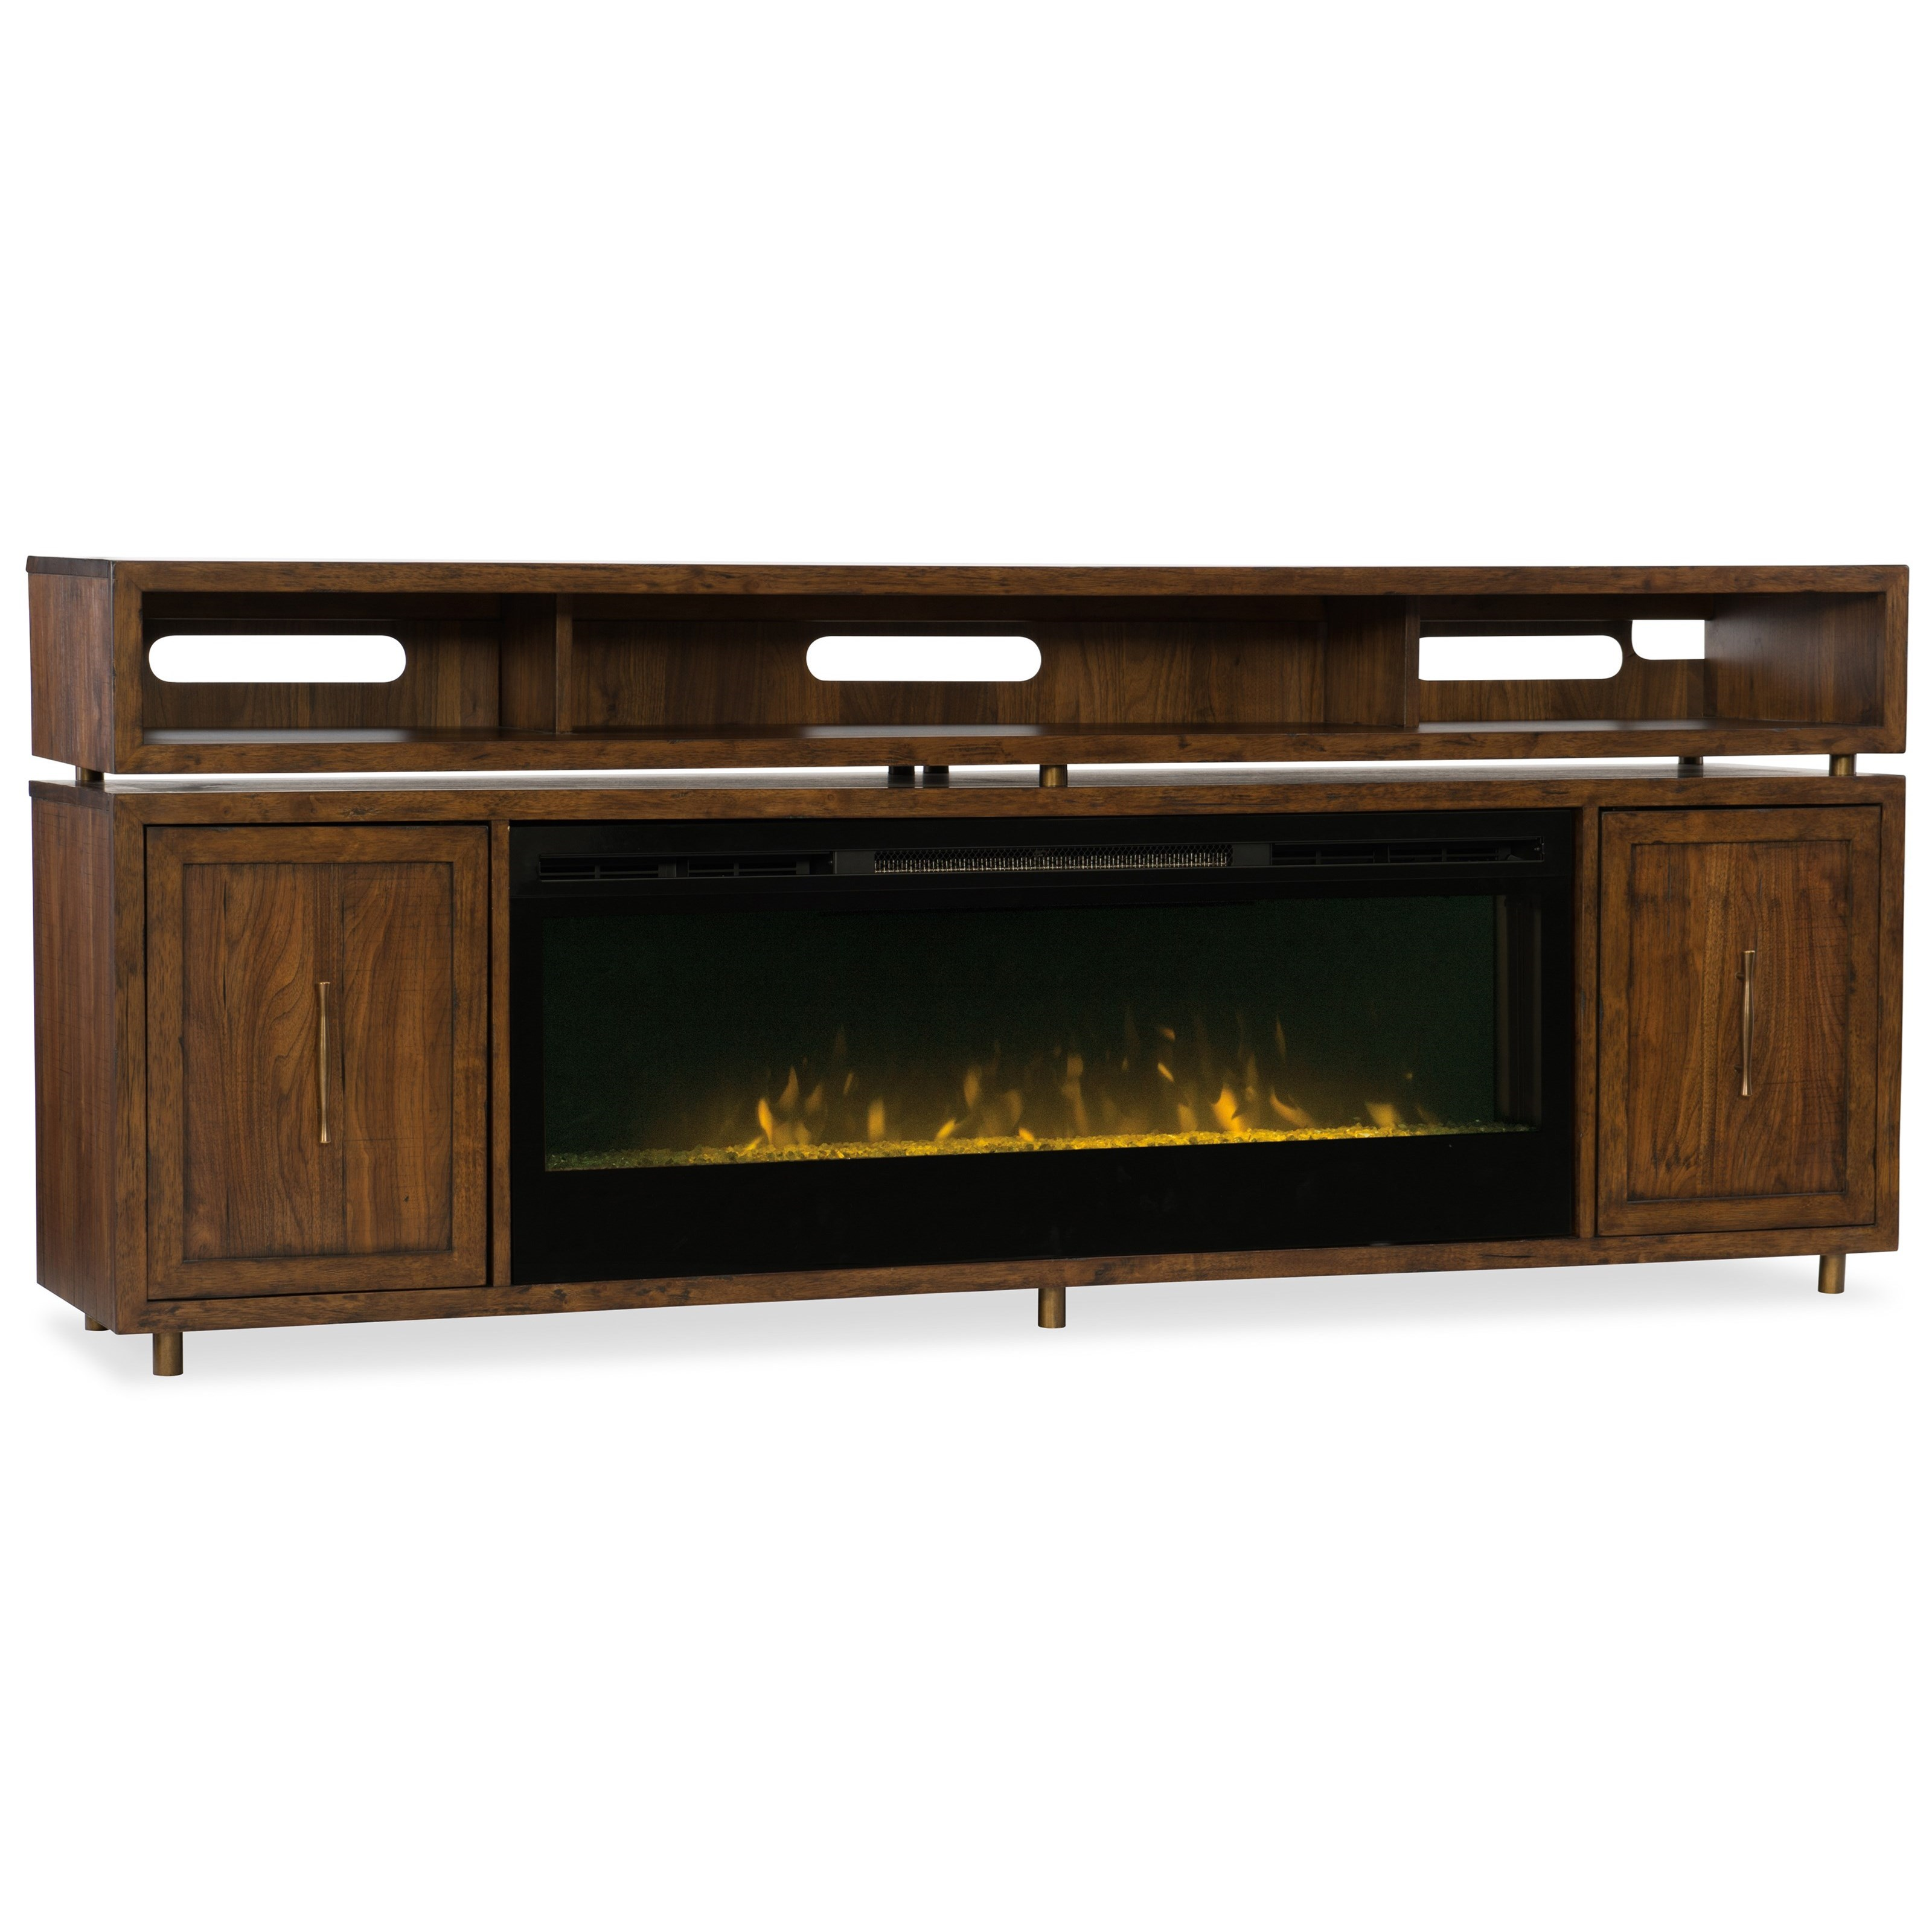 tv garden with stand console product fireplace today in inch shipping home espresso media free electric overstock